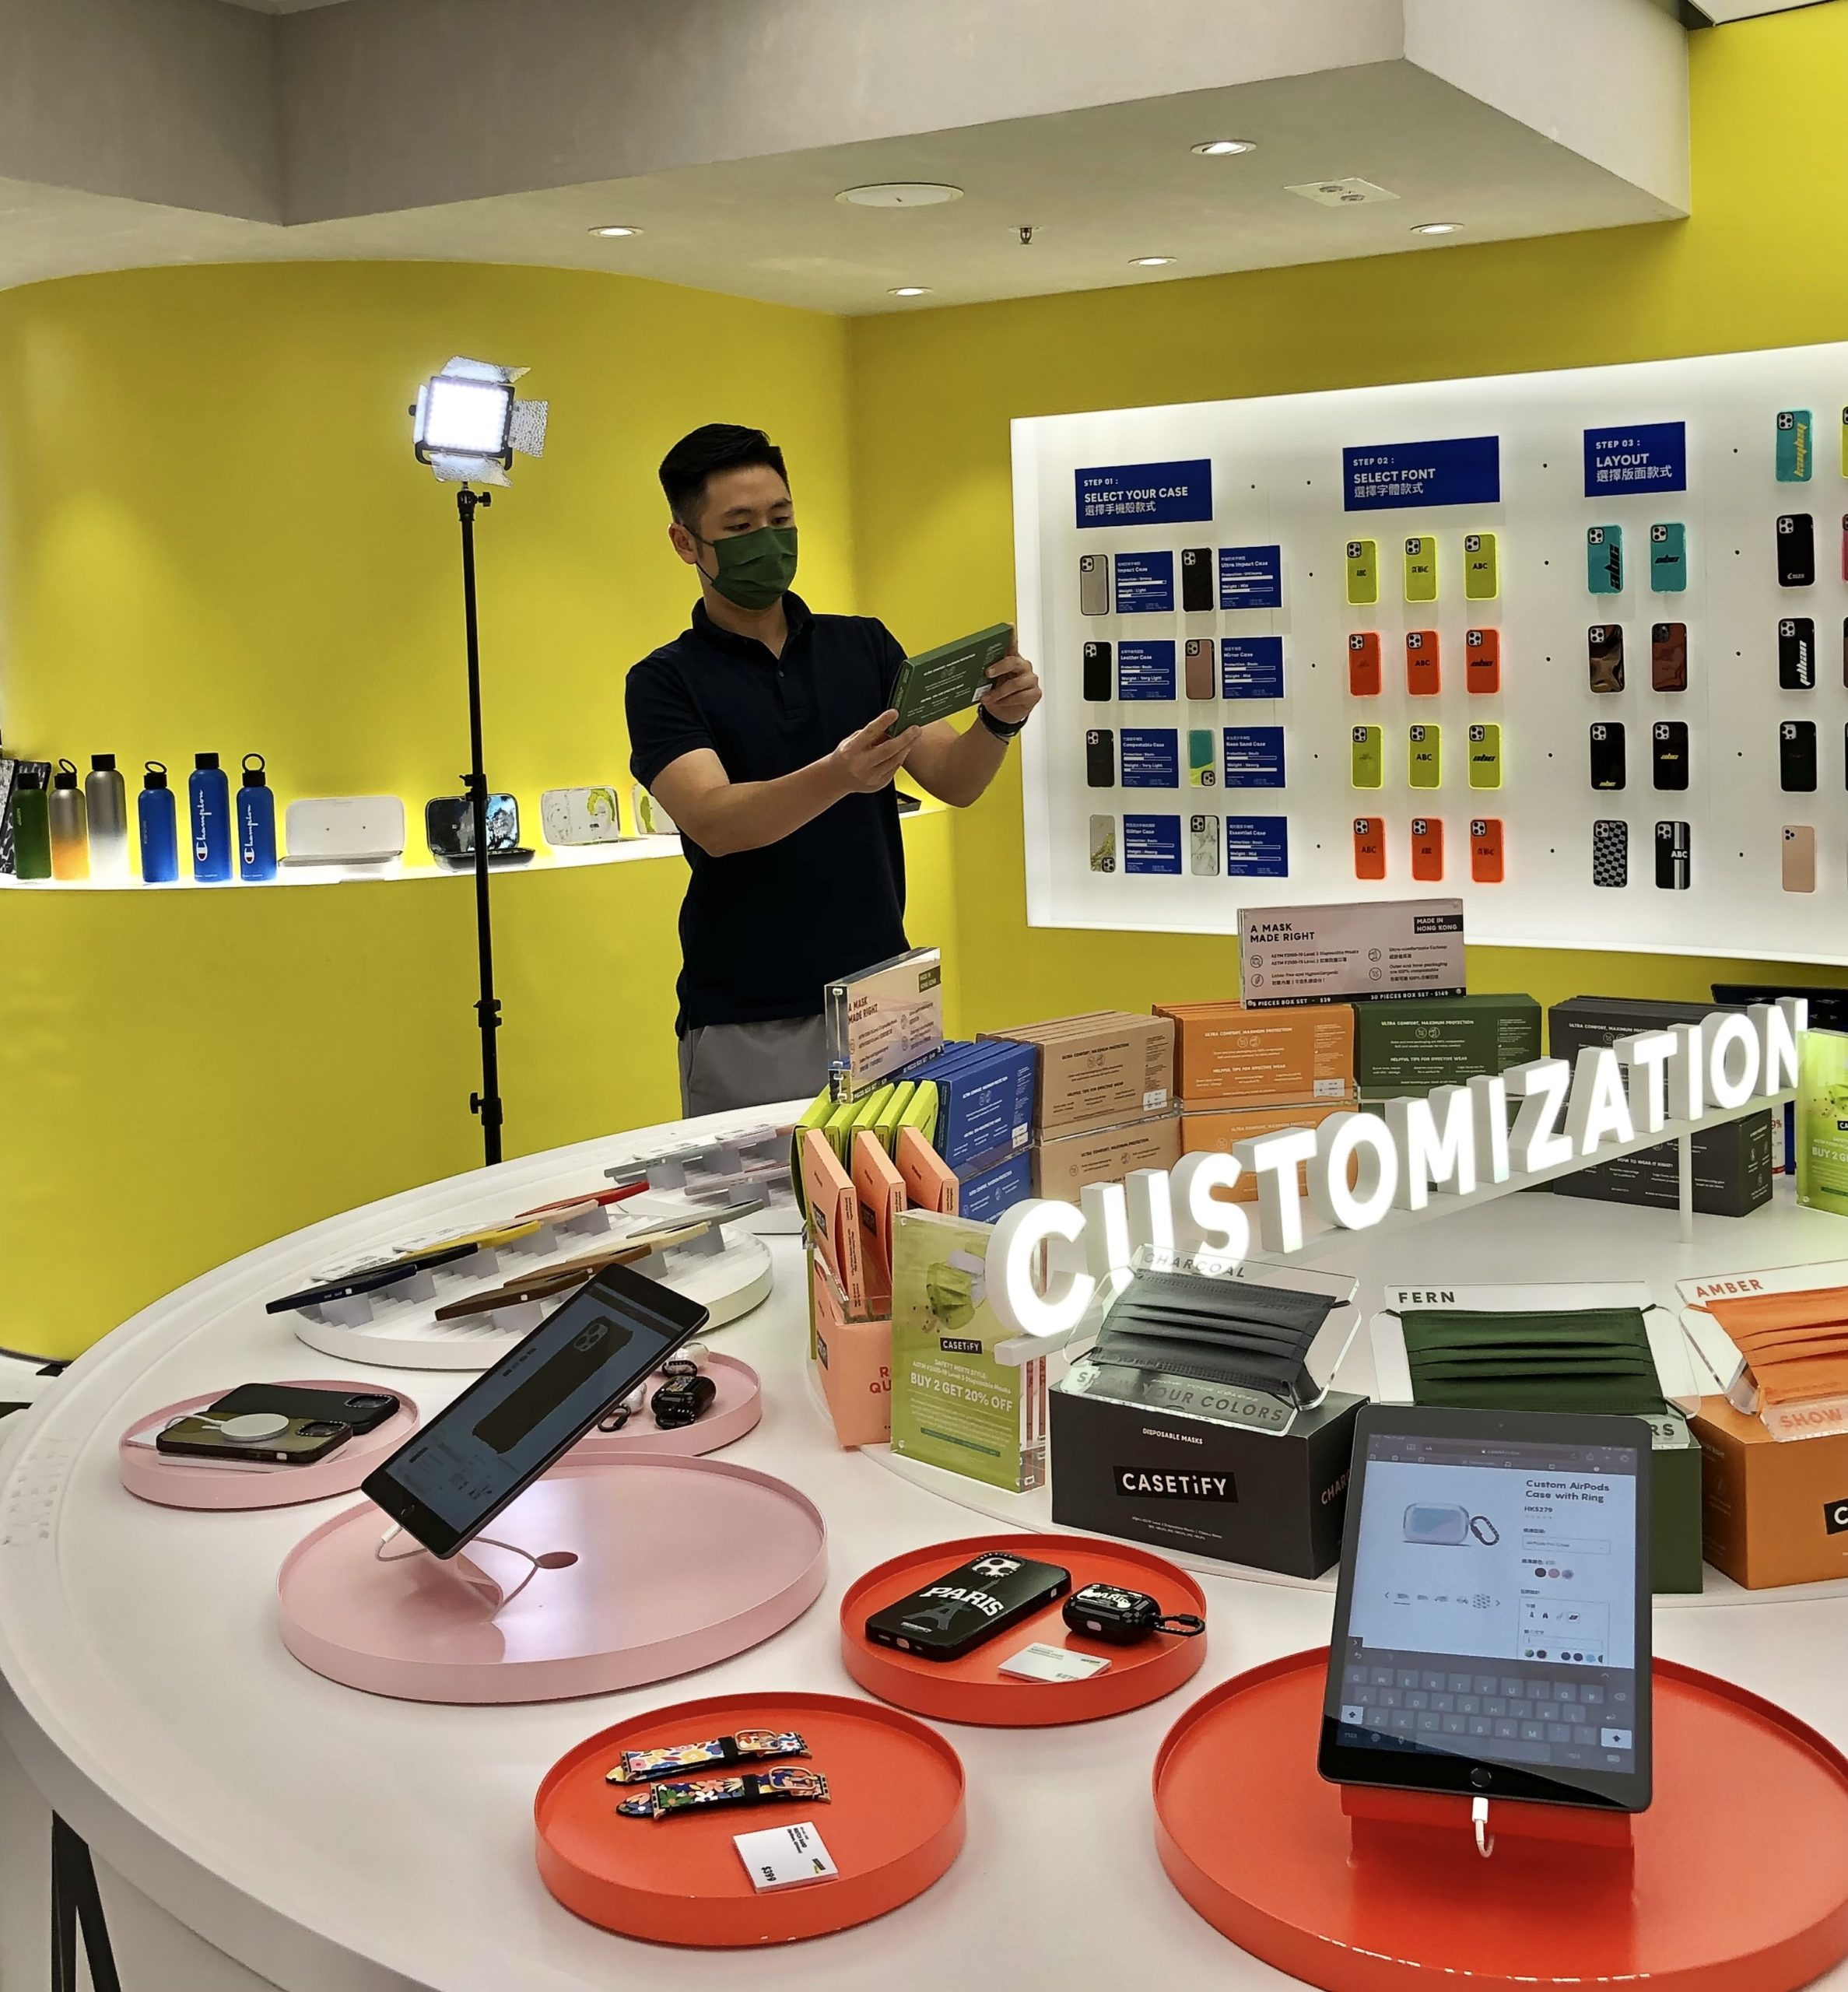 Behind the scene – CASETiFY Customer story video shooting